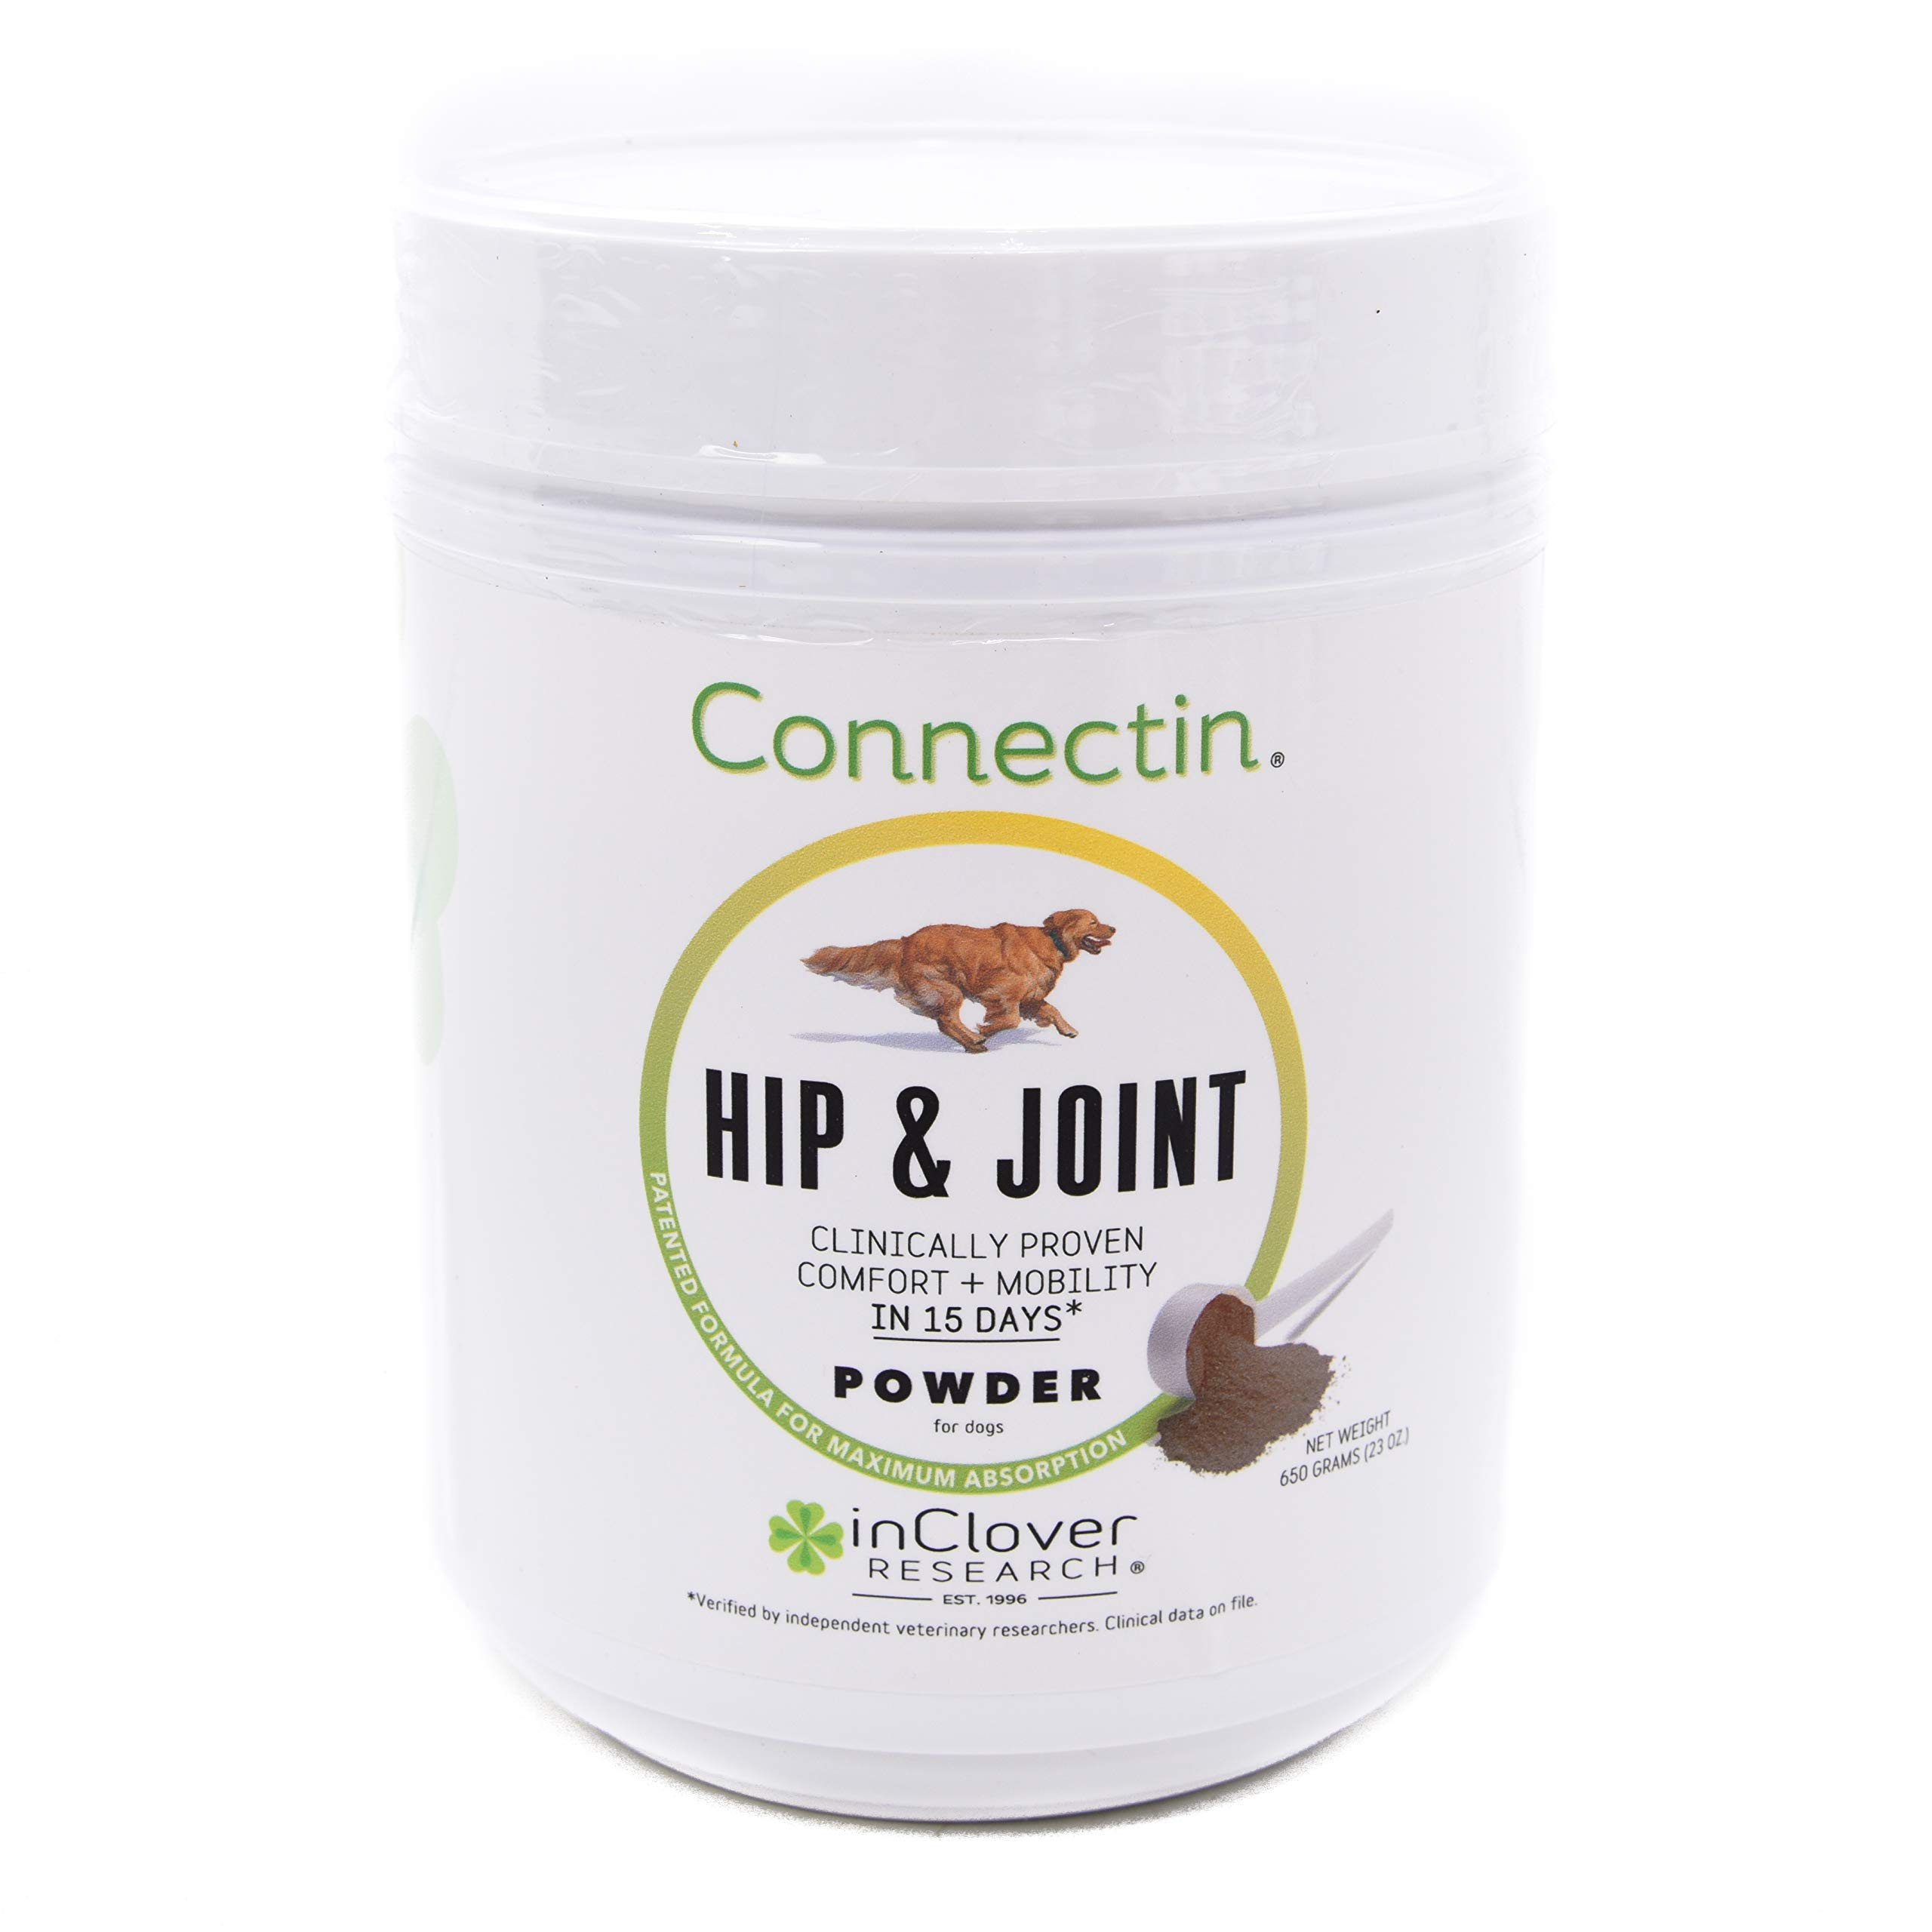 In Clover Connectin Hip and Joint Powder Supplement for Dogs, Best Patented and Clinically Tested Complete Joint Supplement, Combines Glucosamine, Chondroitin and Hyaluronic Acid with Herbs to Work in 15 Days, 23 oz. (650 gram)